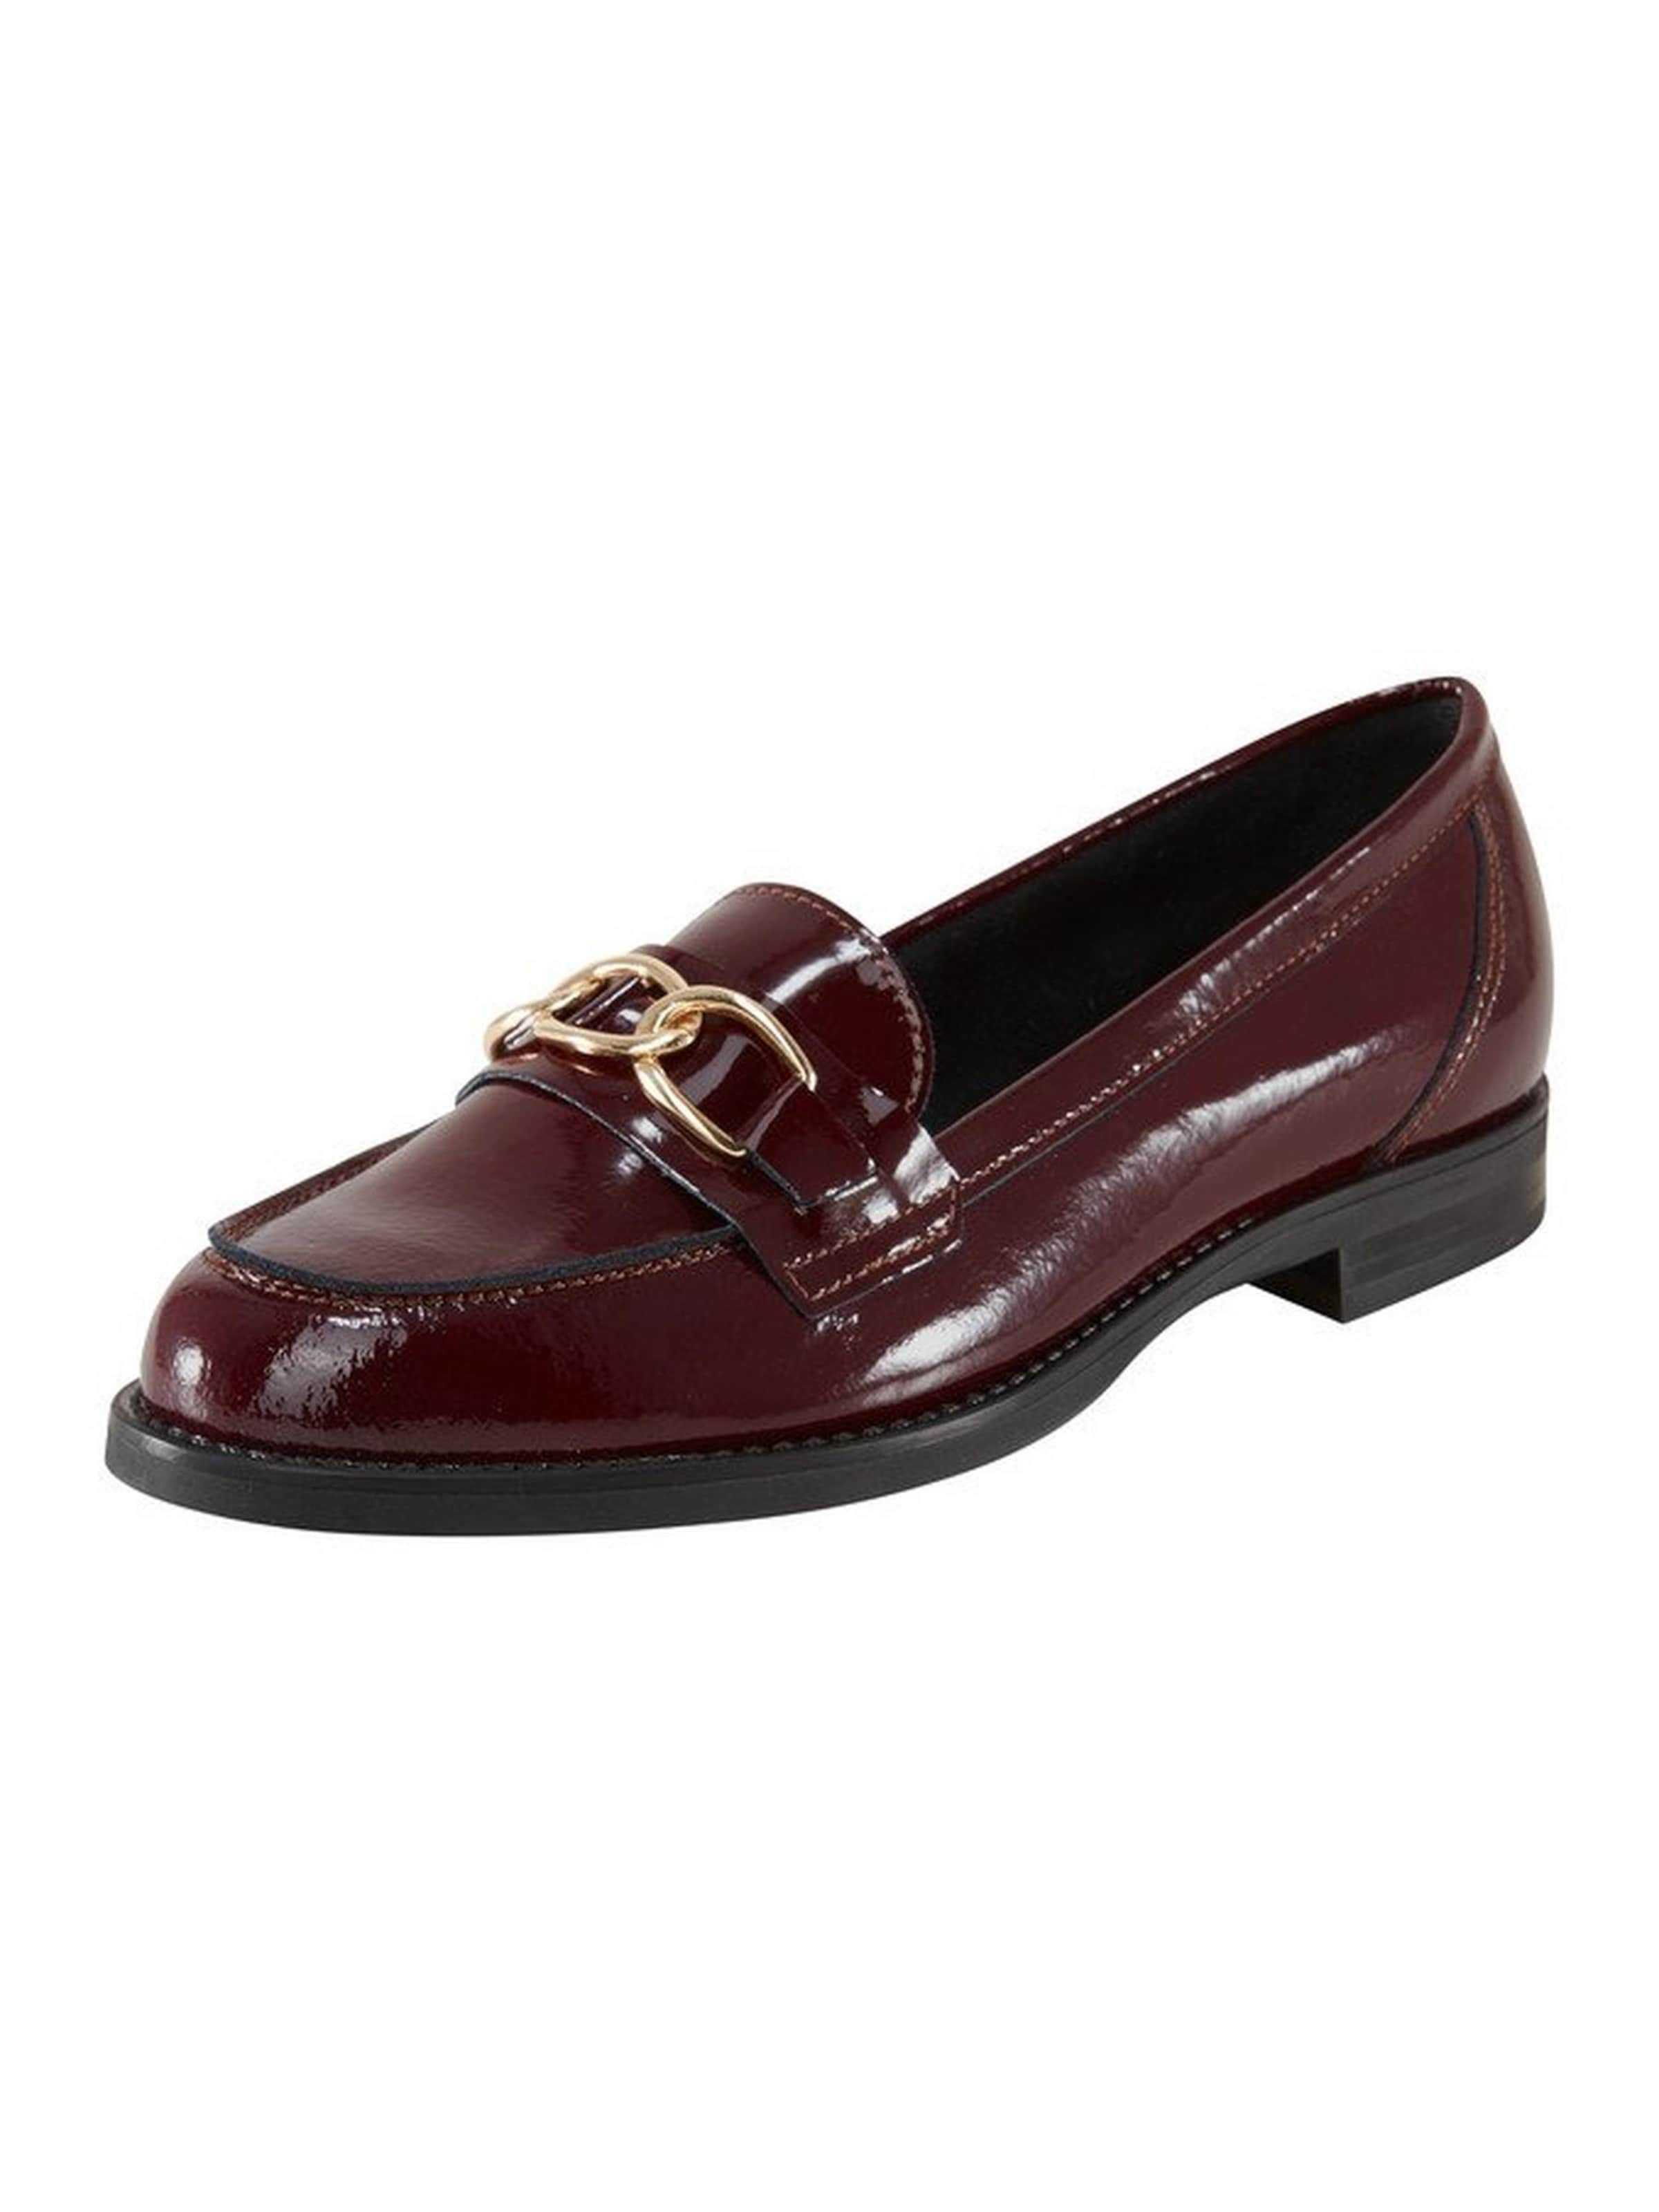 Heine Heine In Heine Bordeaux In Slipper Heine In Slipper Bordeaux Slipper Bordeaux kwOPuTXZi